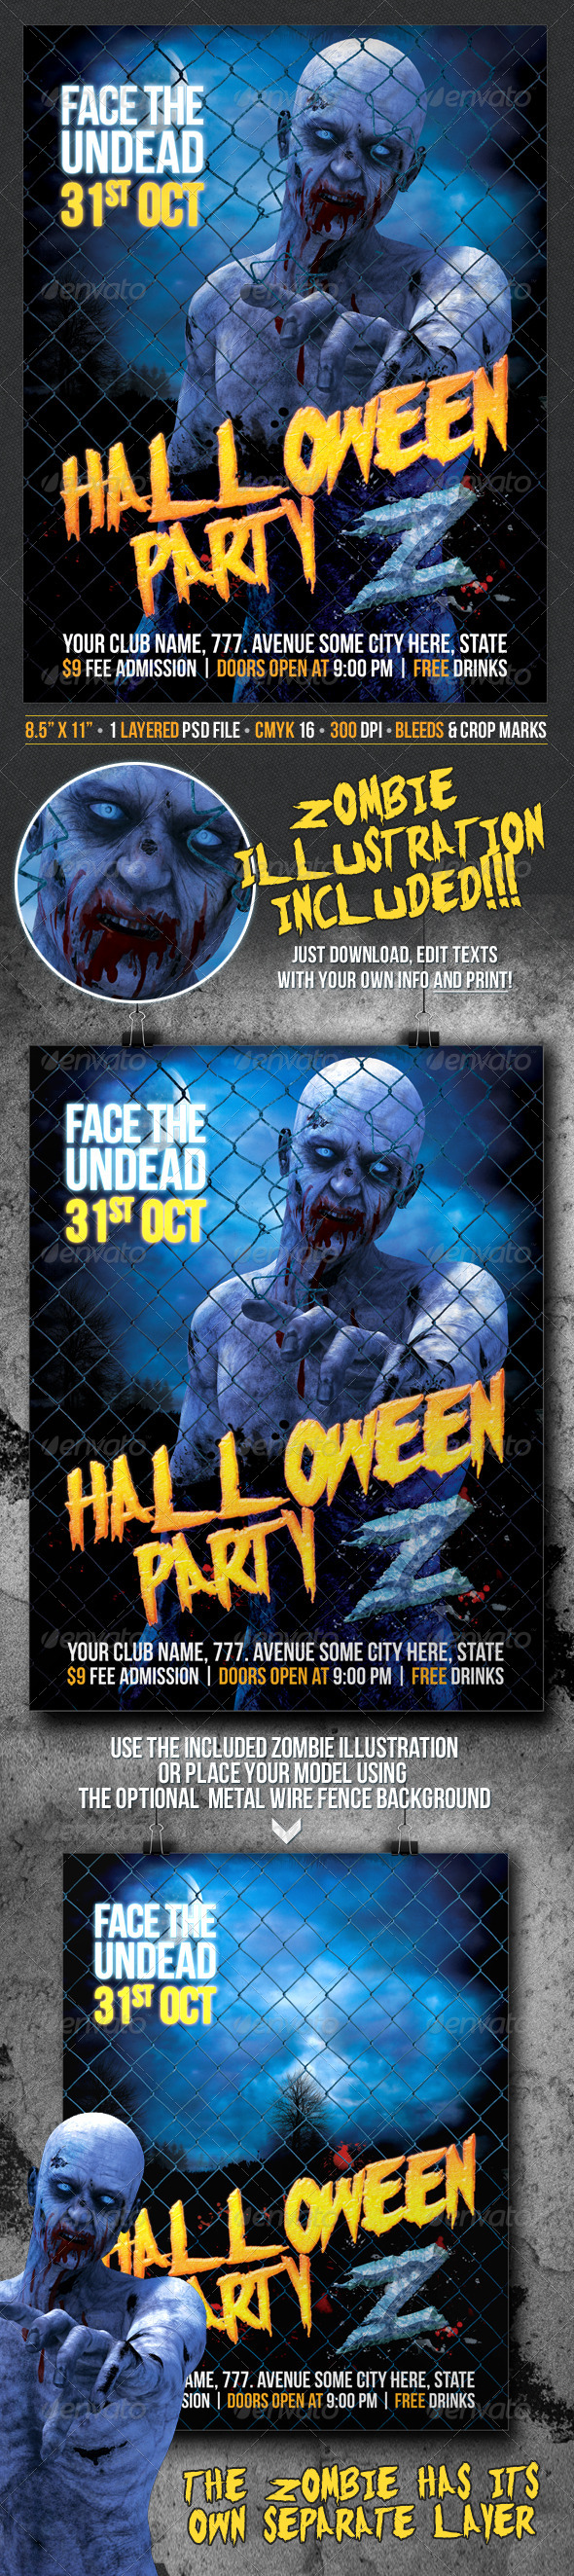 GraphicRiver Halloween Party Z Zombie Themed Poster Flyer 8525428